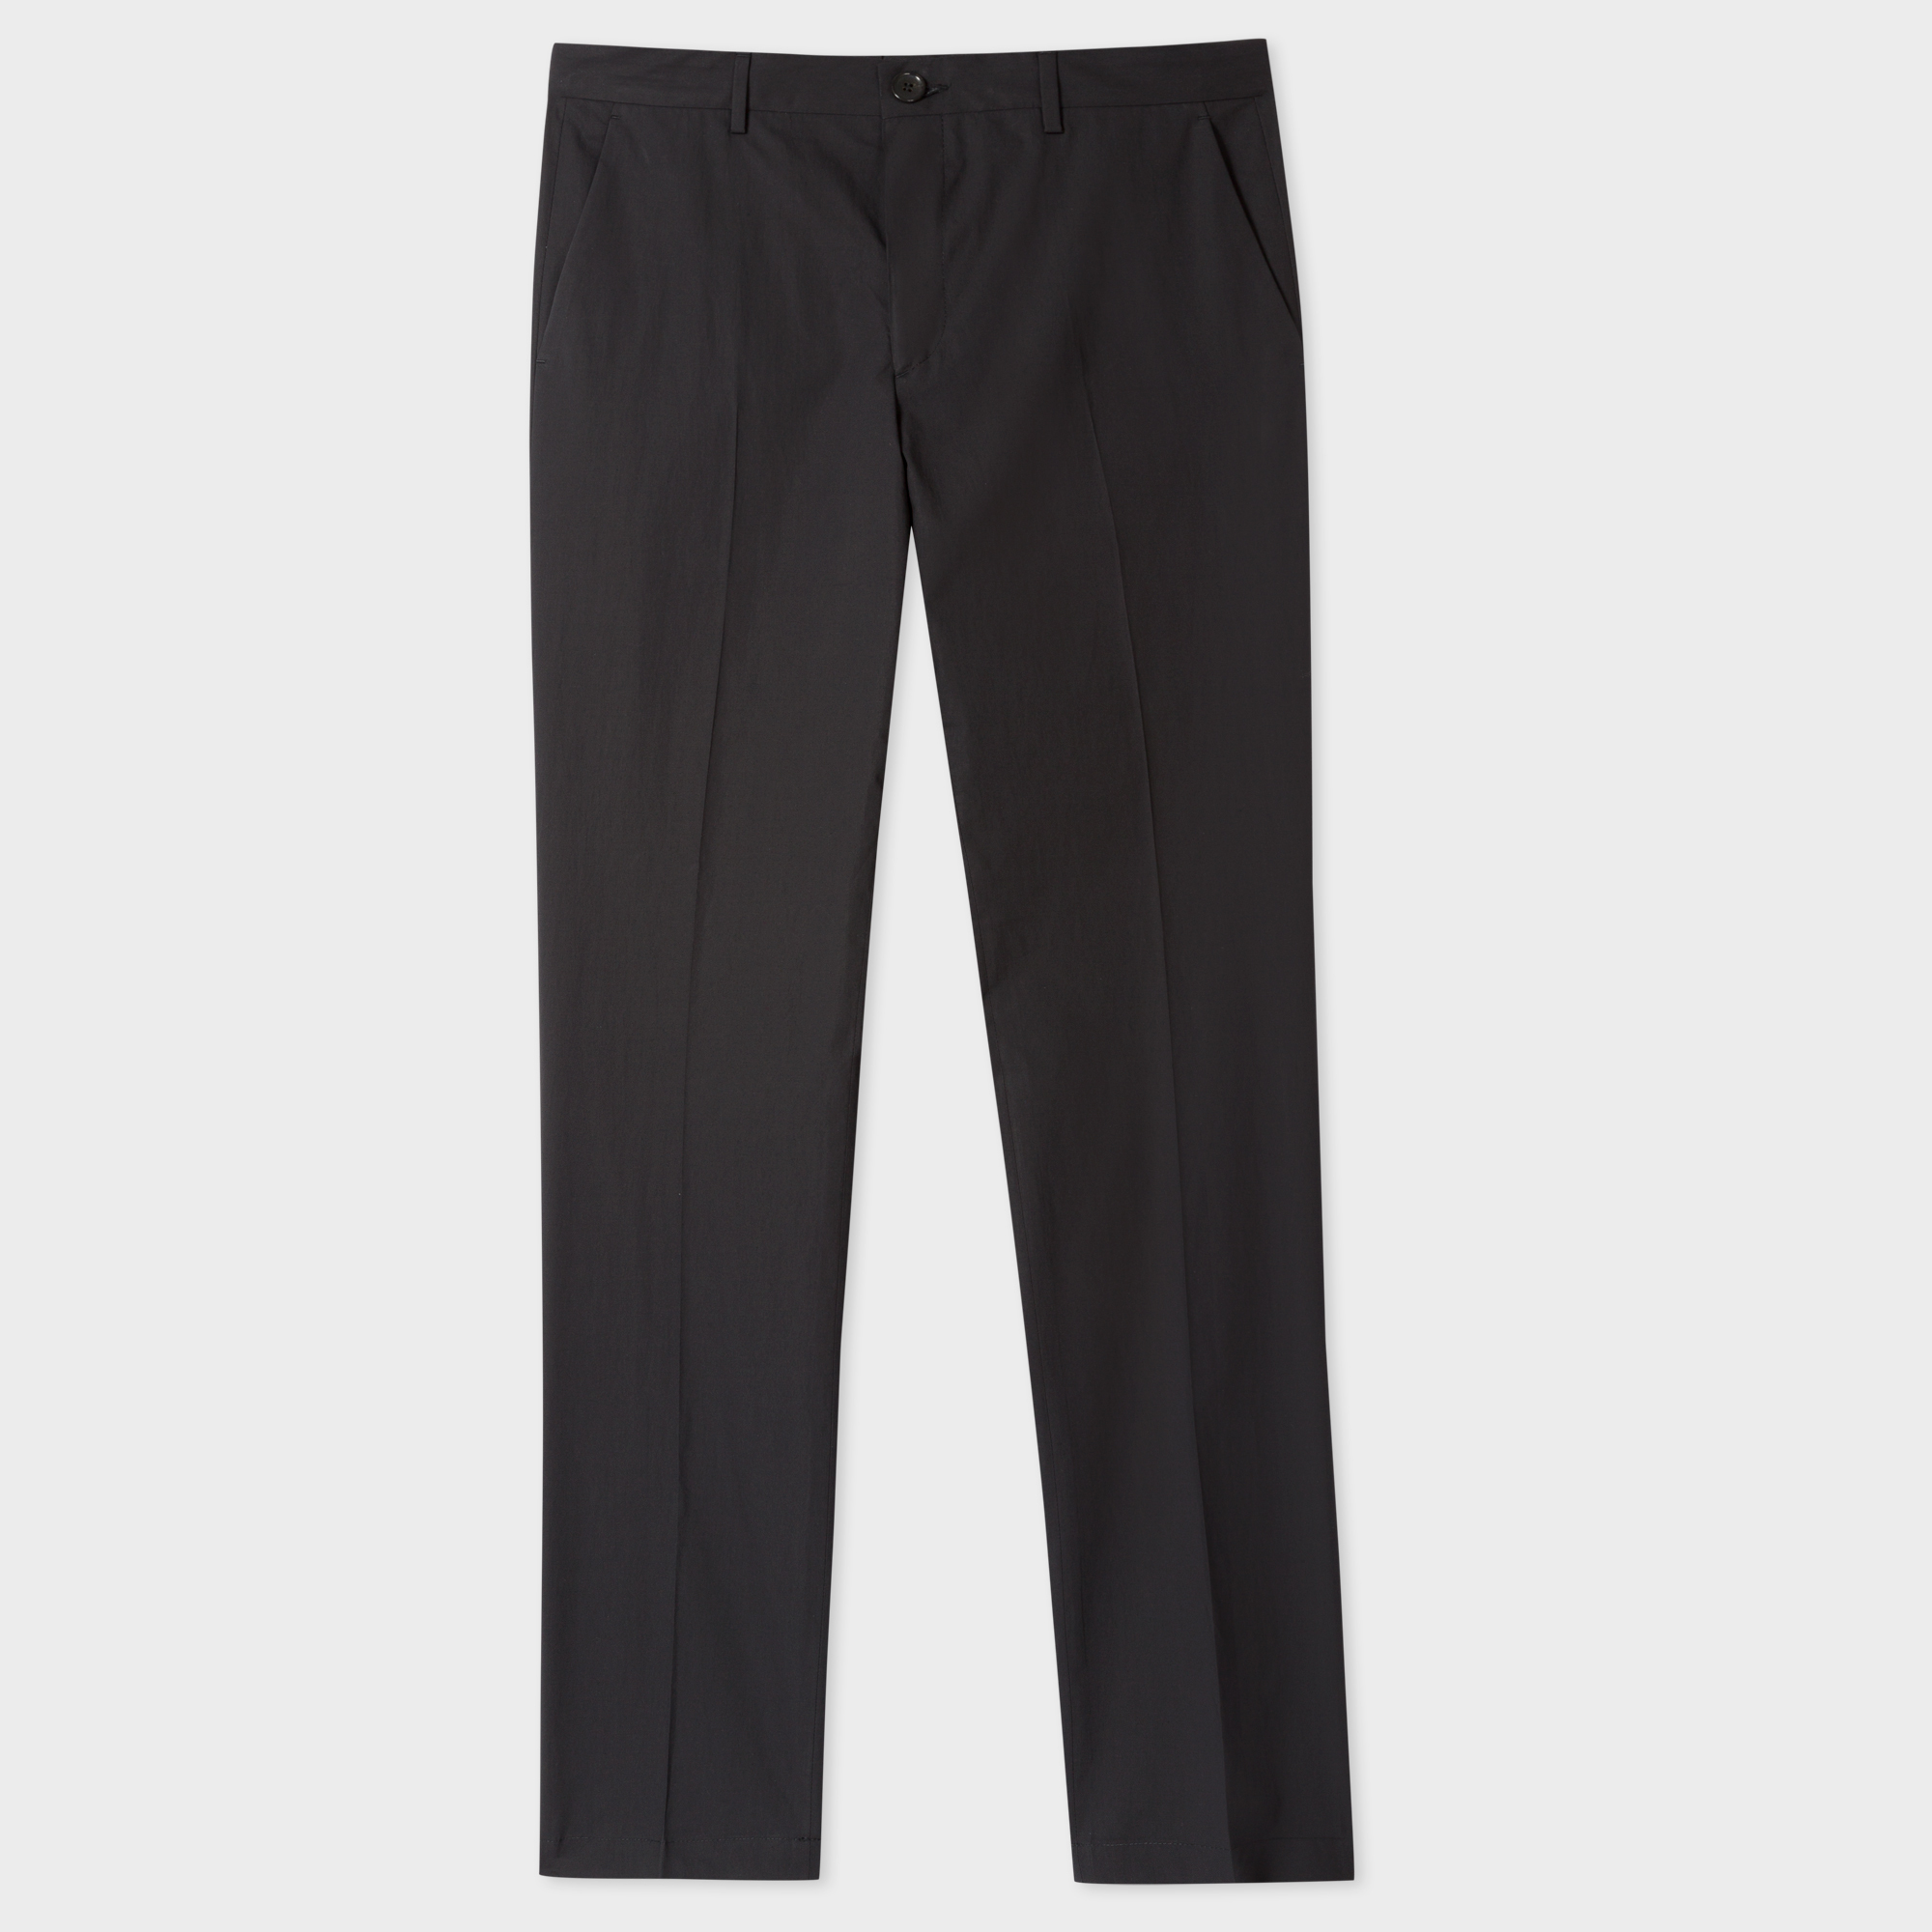 Paul Smith Men's Slim-Fit Black Lightweight Cotton Chinos